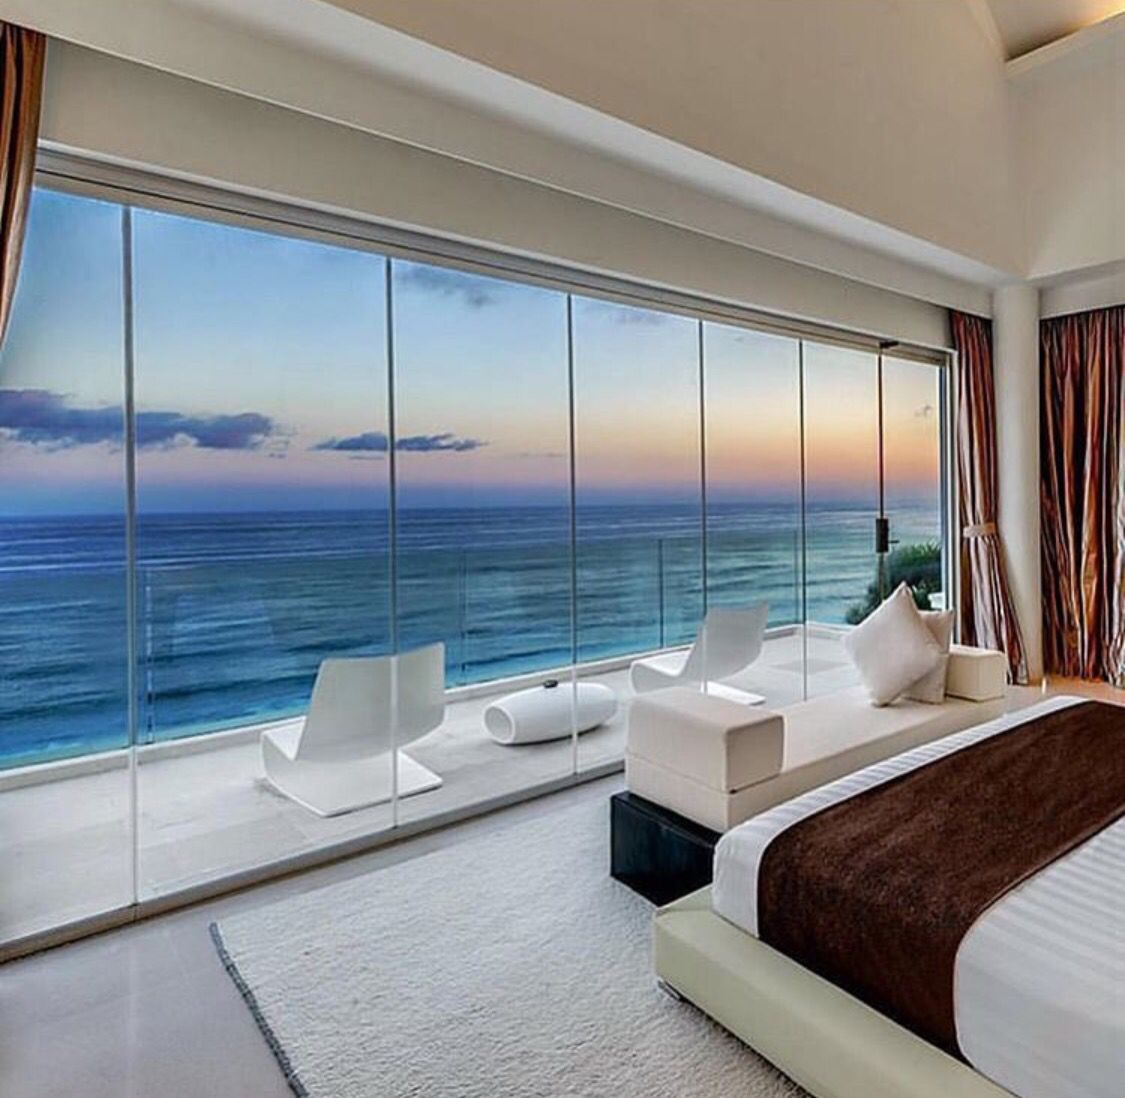 Room views | My future beachhouses | Pinterest | Room, Bedrooms and ...